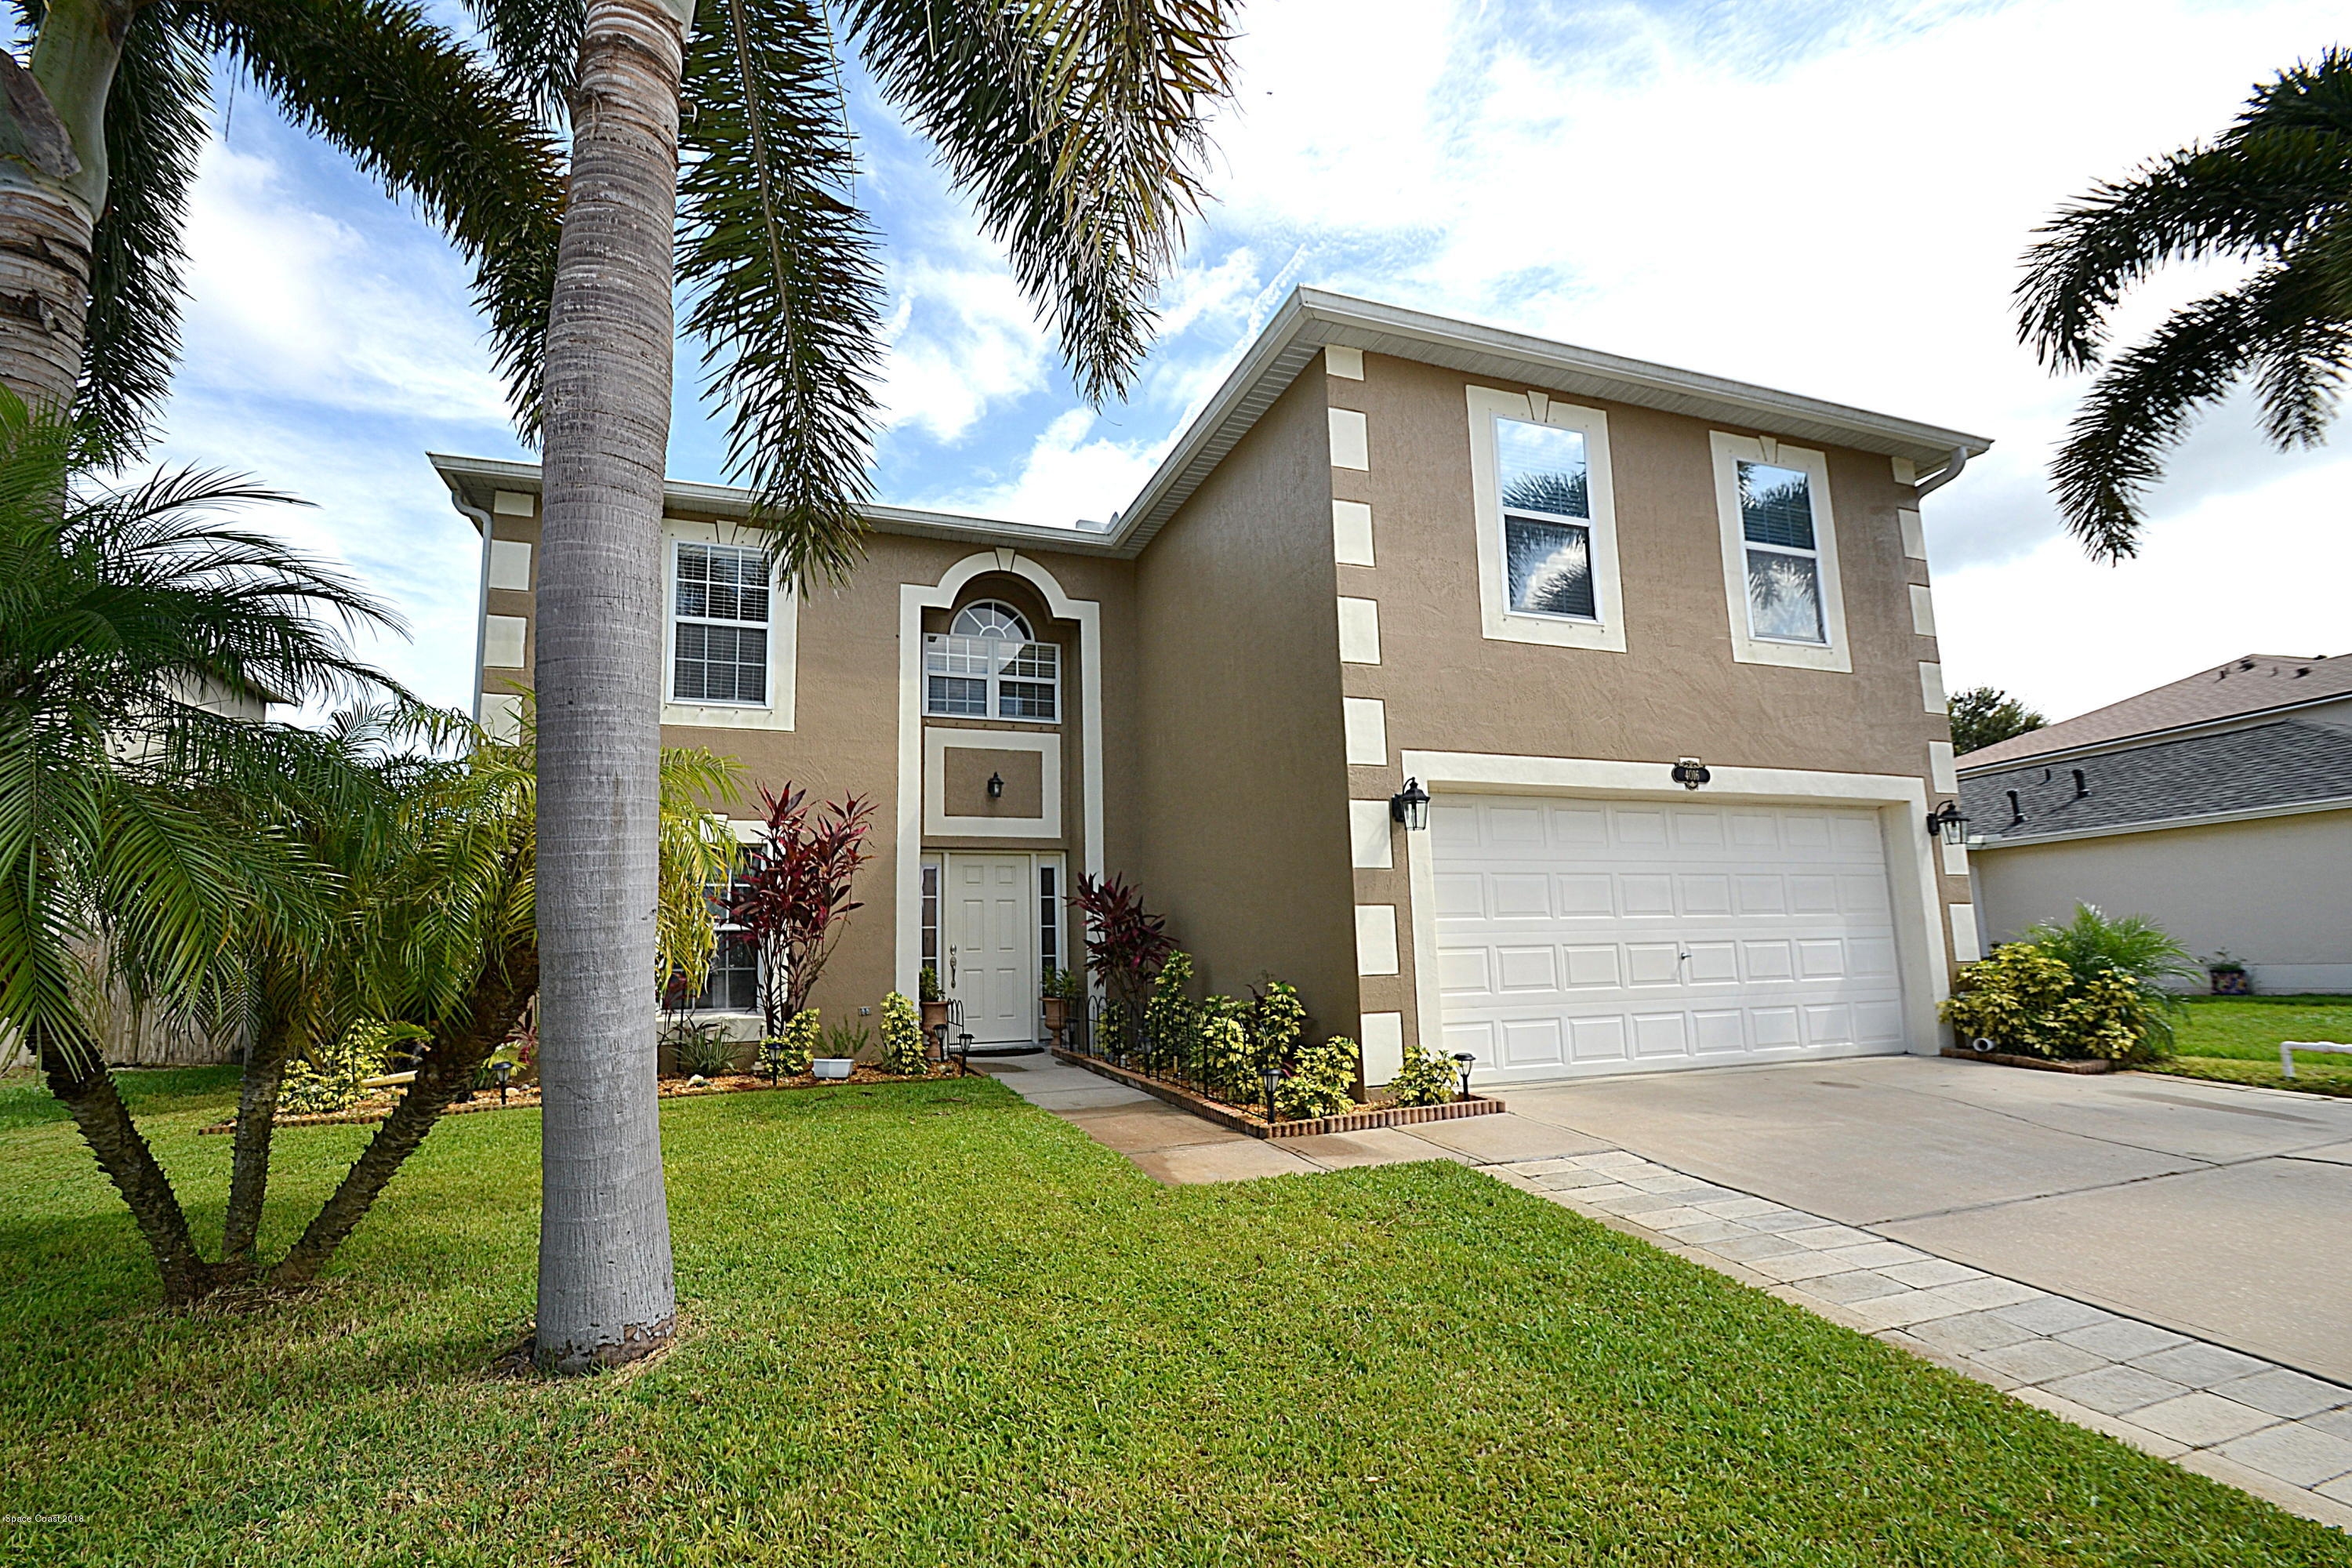 Single Family Home for Sale at 4016 Four Lakes 4016 Four Lakes Melbourne, Florida 32940 United States